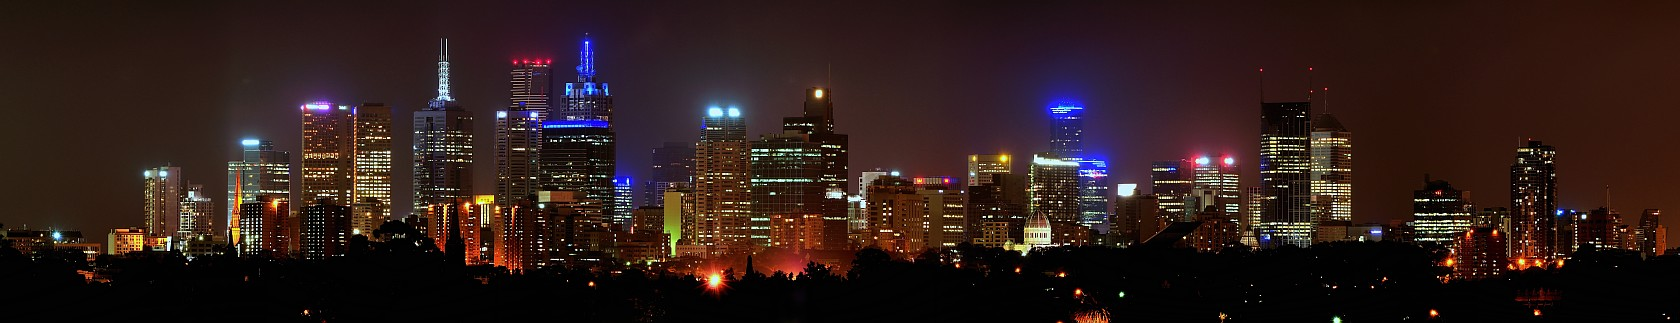 Melbourne skyline, at night. Capital of Victoria, Australia